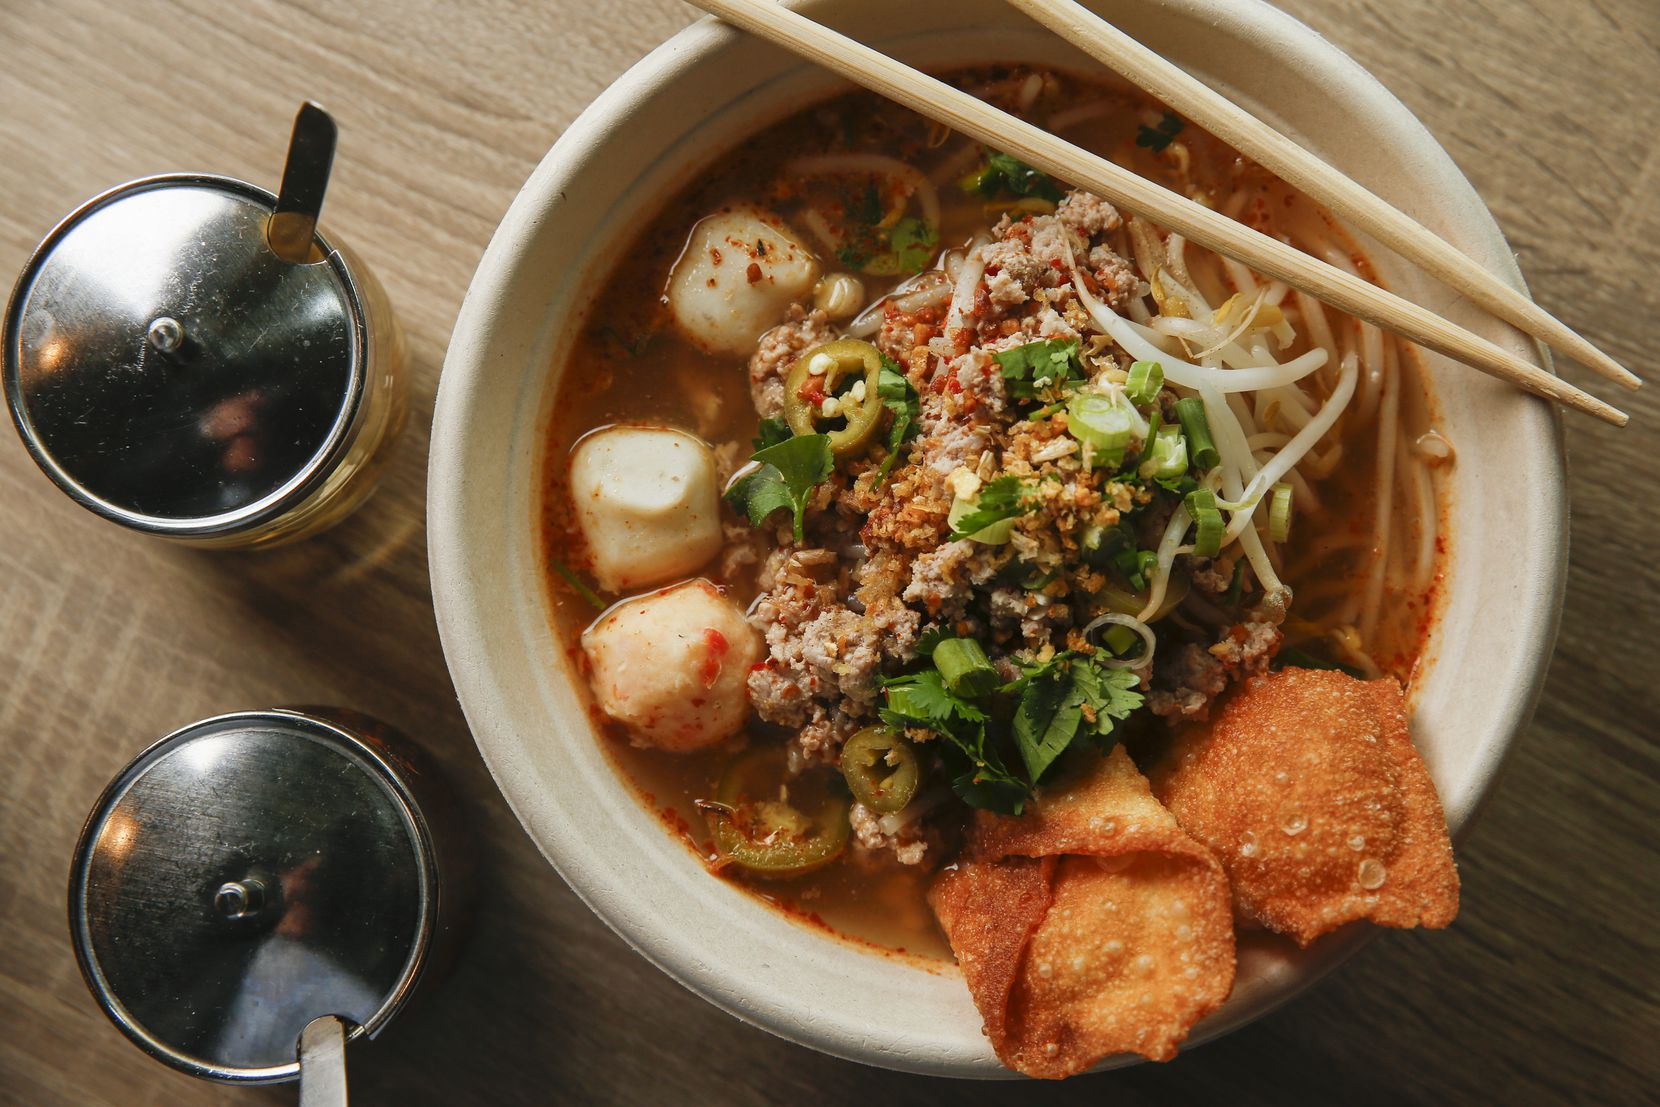 Tom yum moo sub, spicy noodle soup